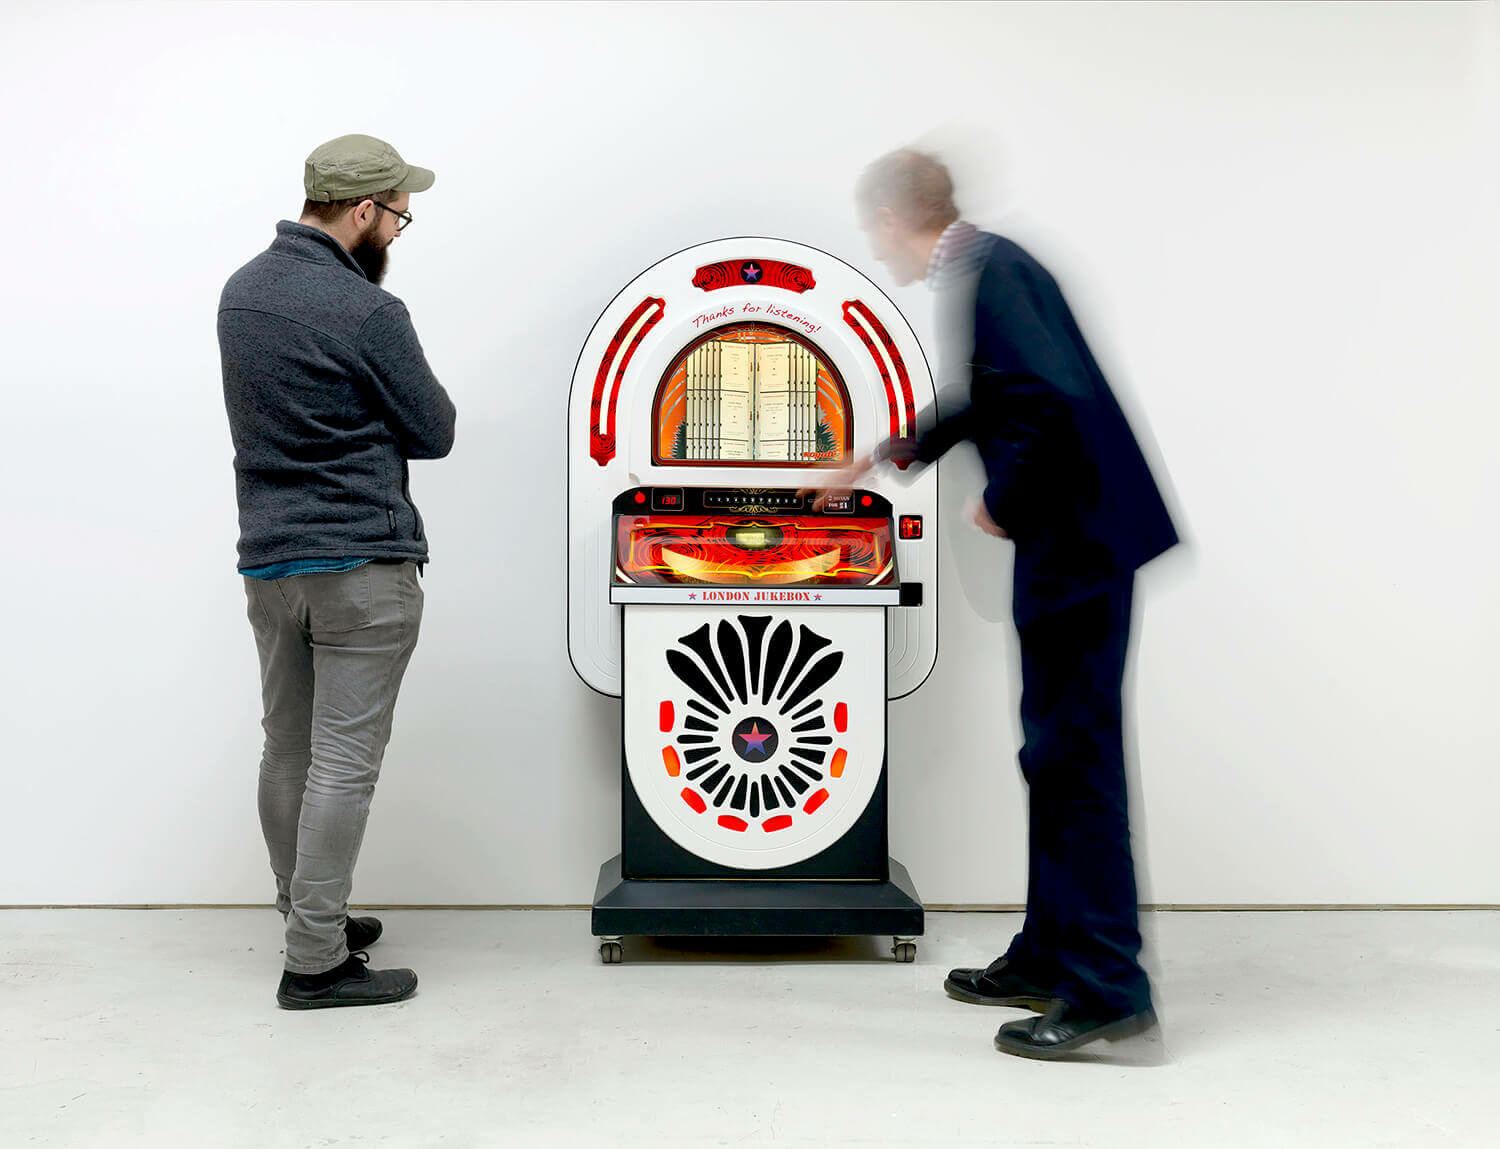 Bloomberg Space presents Susan Hiller's London Jukebox